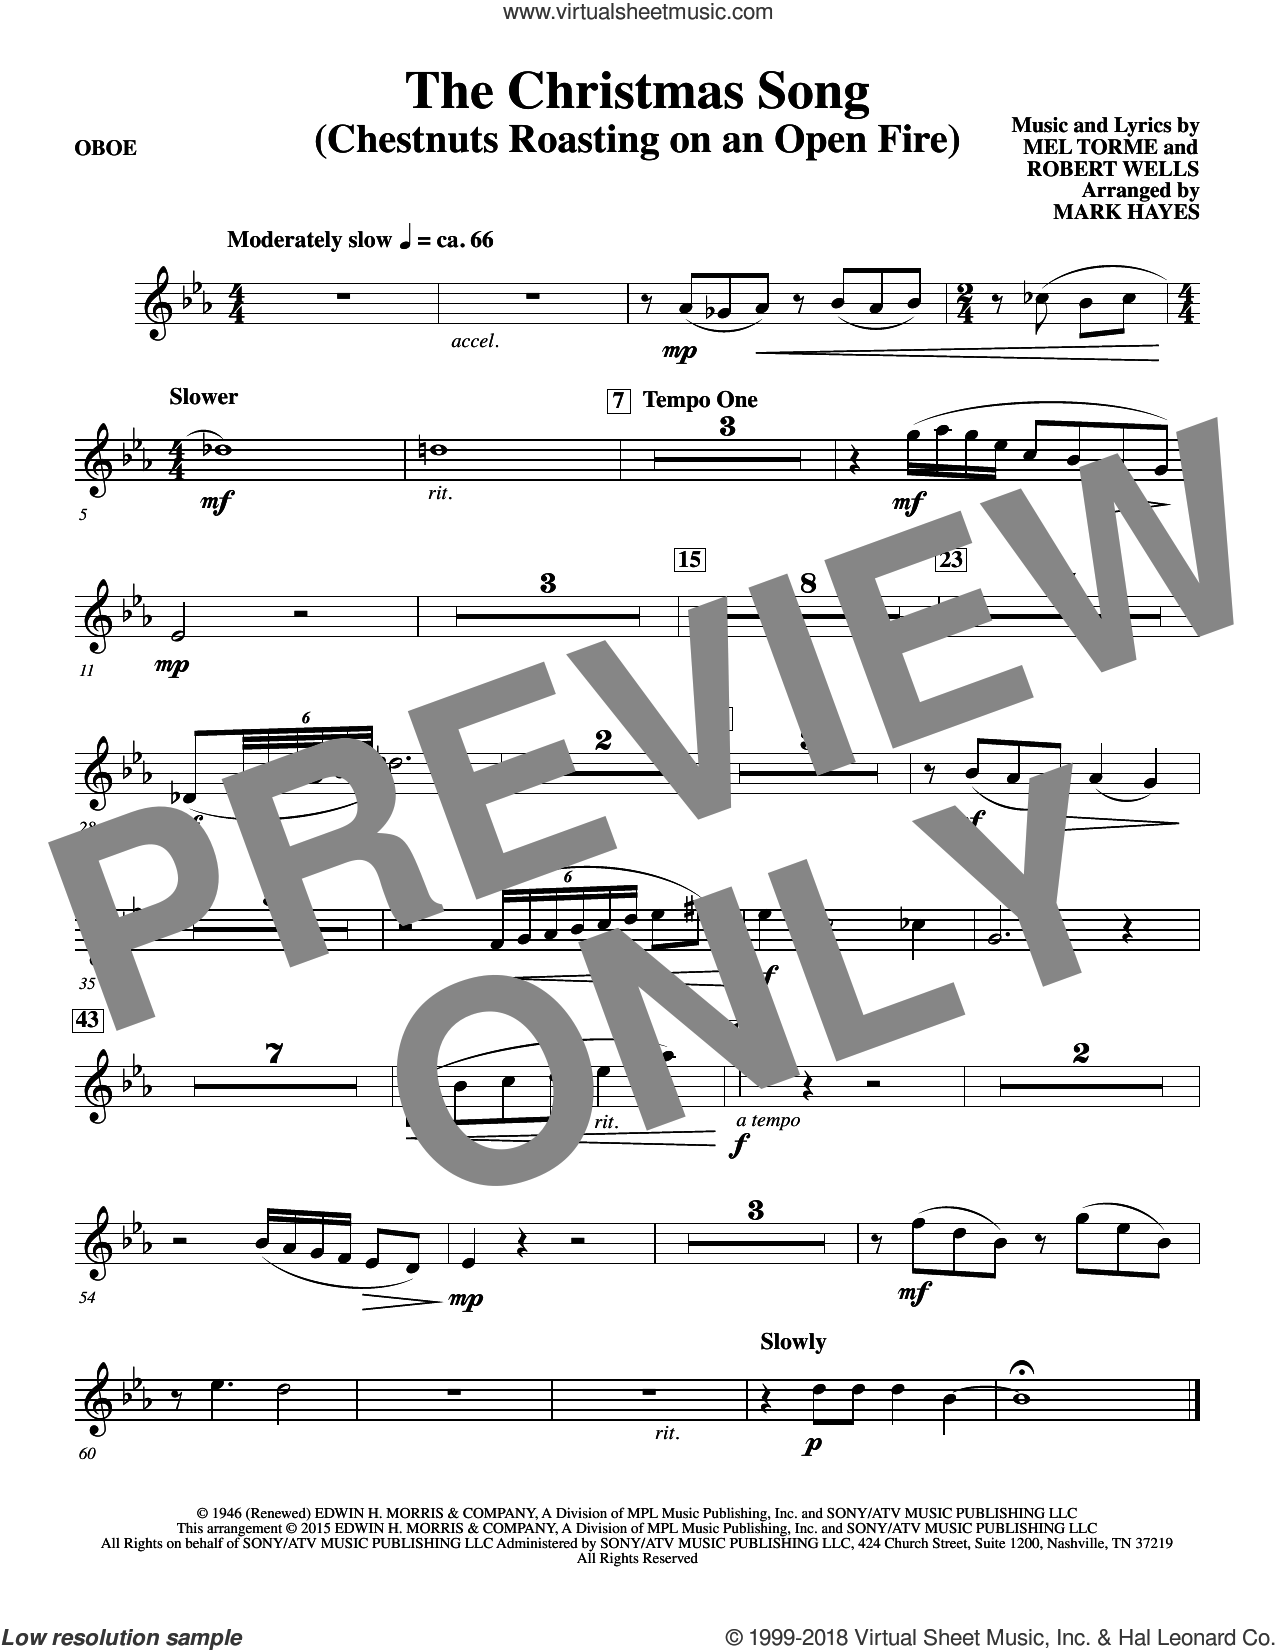 The Christmas Song (Chestnuts Roasting On An Open Fire) sheet music for orchestra/band (oboe) by Mel Torme, Mark Hayes, Clay Crosse, King Cole Trio, Nat Cole with N. Riddle Orch., Mel Torme and Robert Wells, intermediate skill level